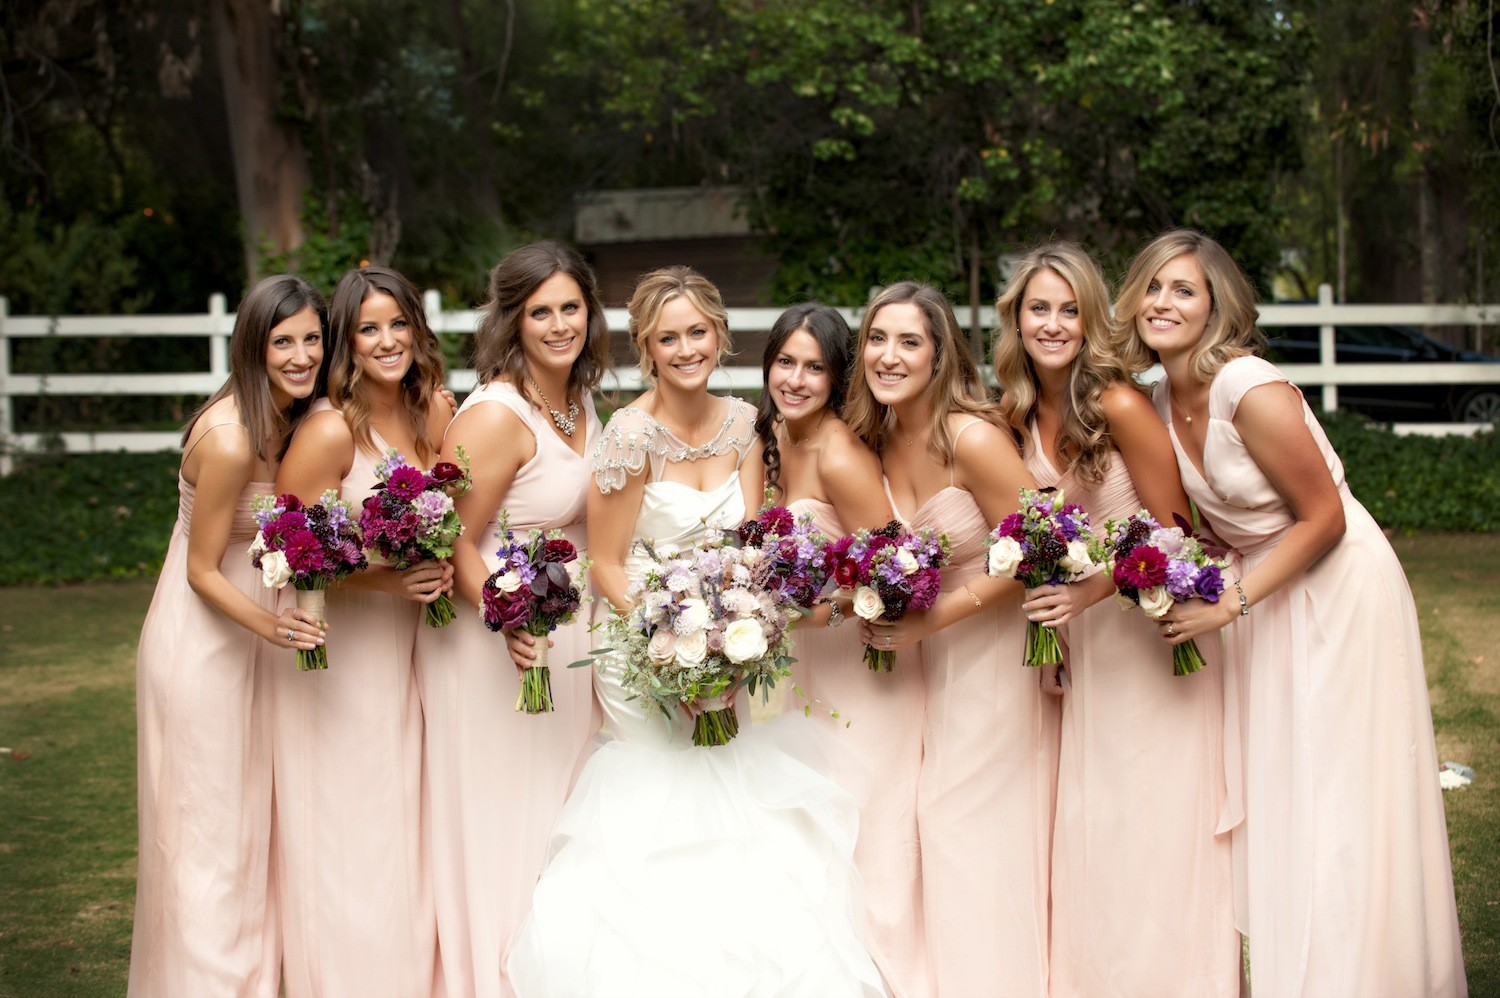 Bridesmaid Duties 101: What To Expect